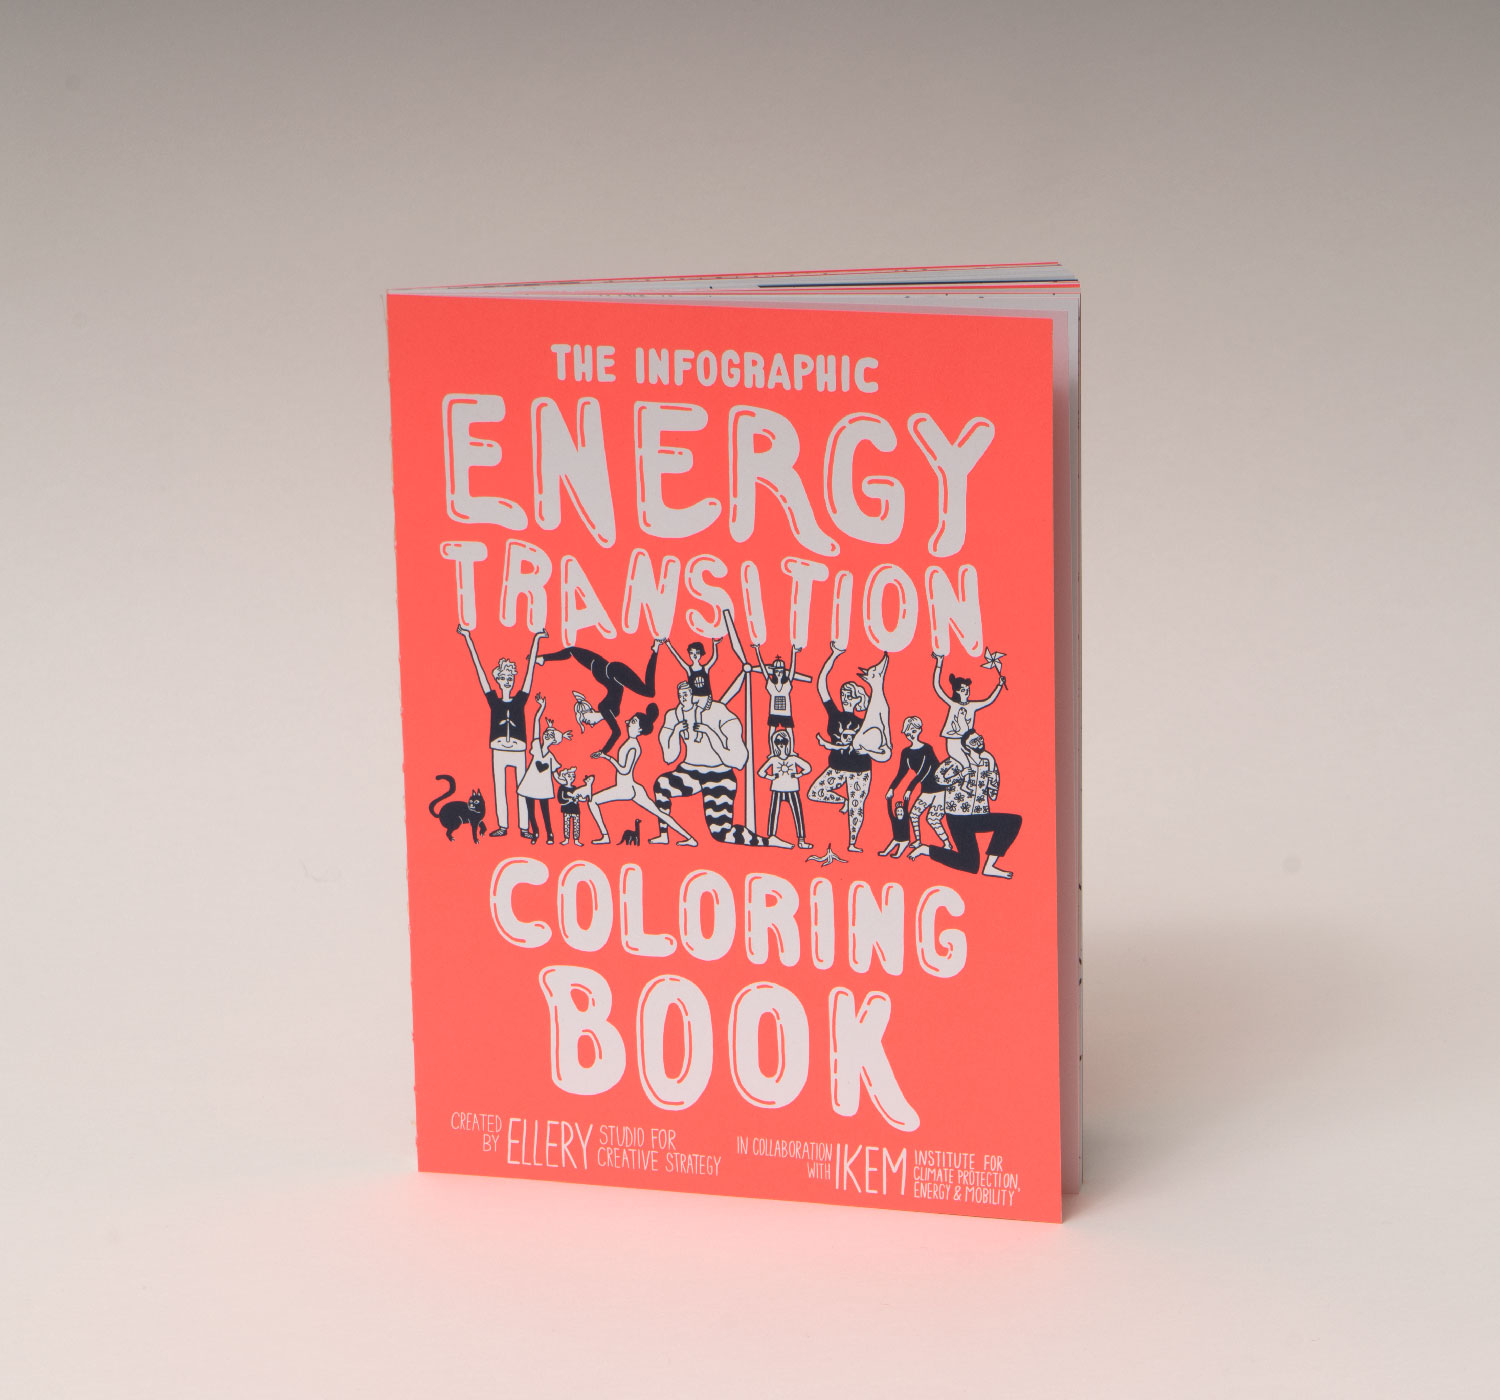 The Infographic Energy Transition Coloring Book